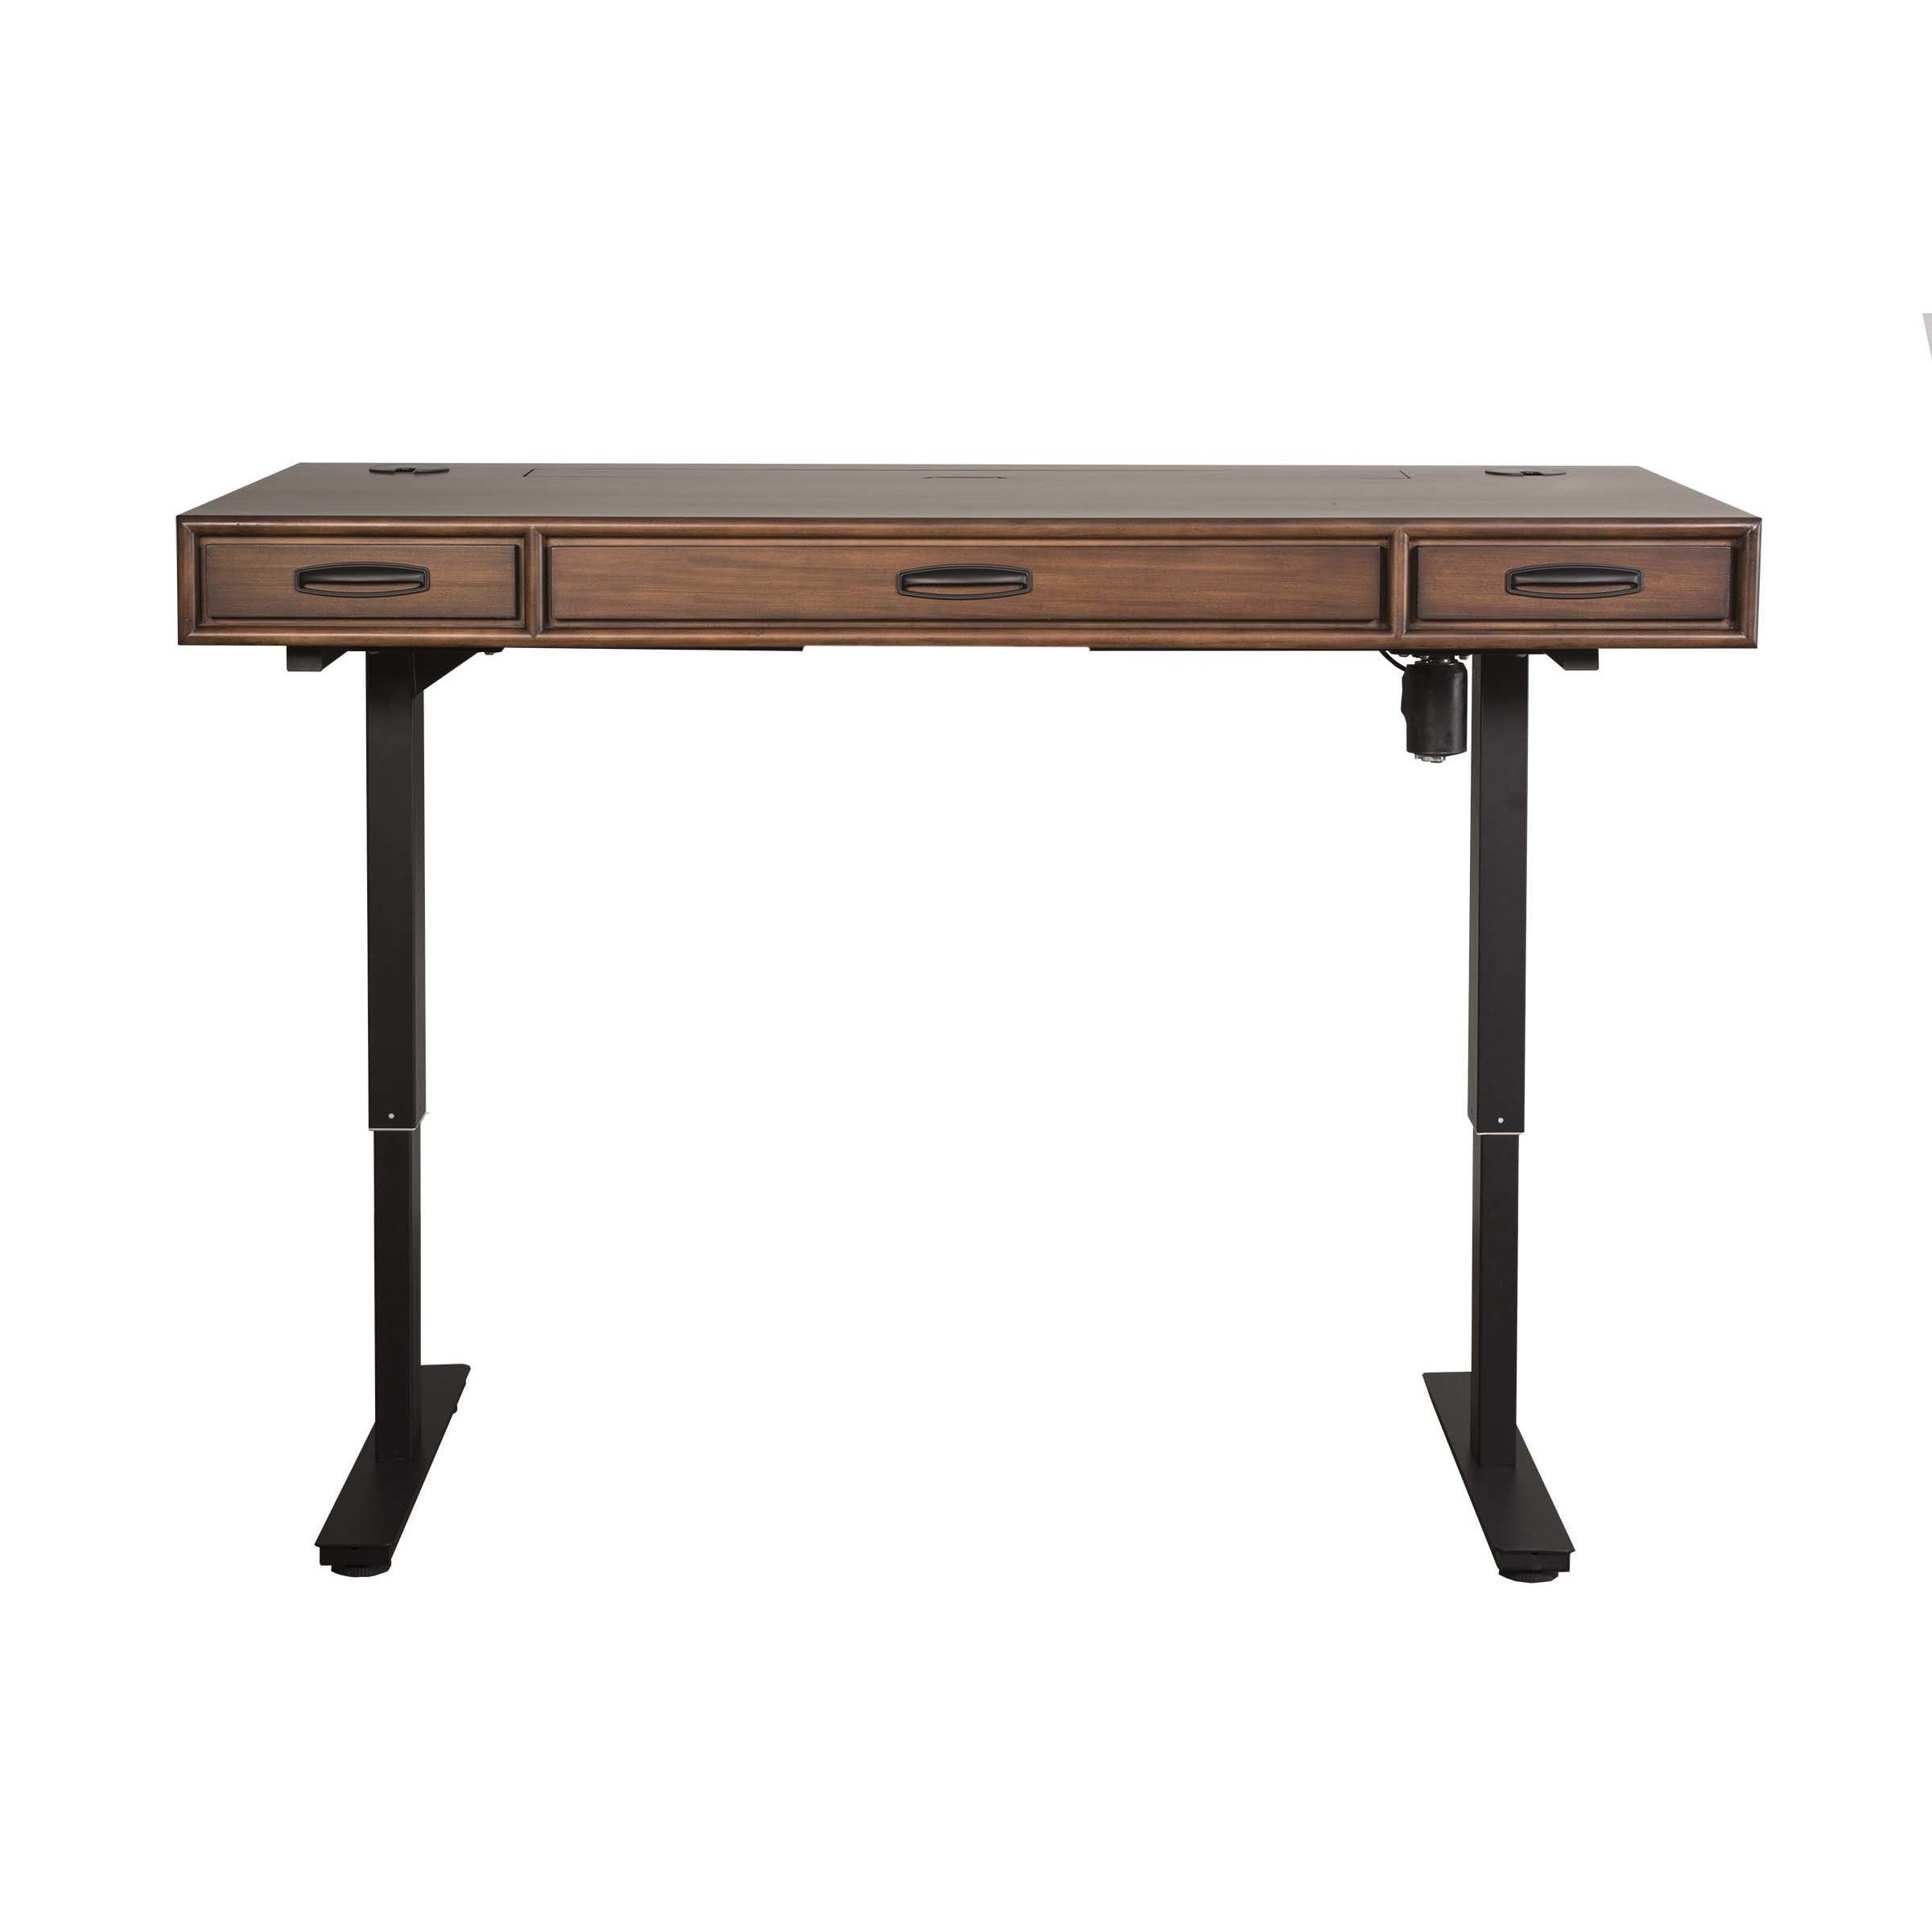 is brown on hemnes solid computer spr en ikea gb a cm desks durable unit natural desk with add wood material products black